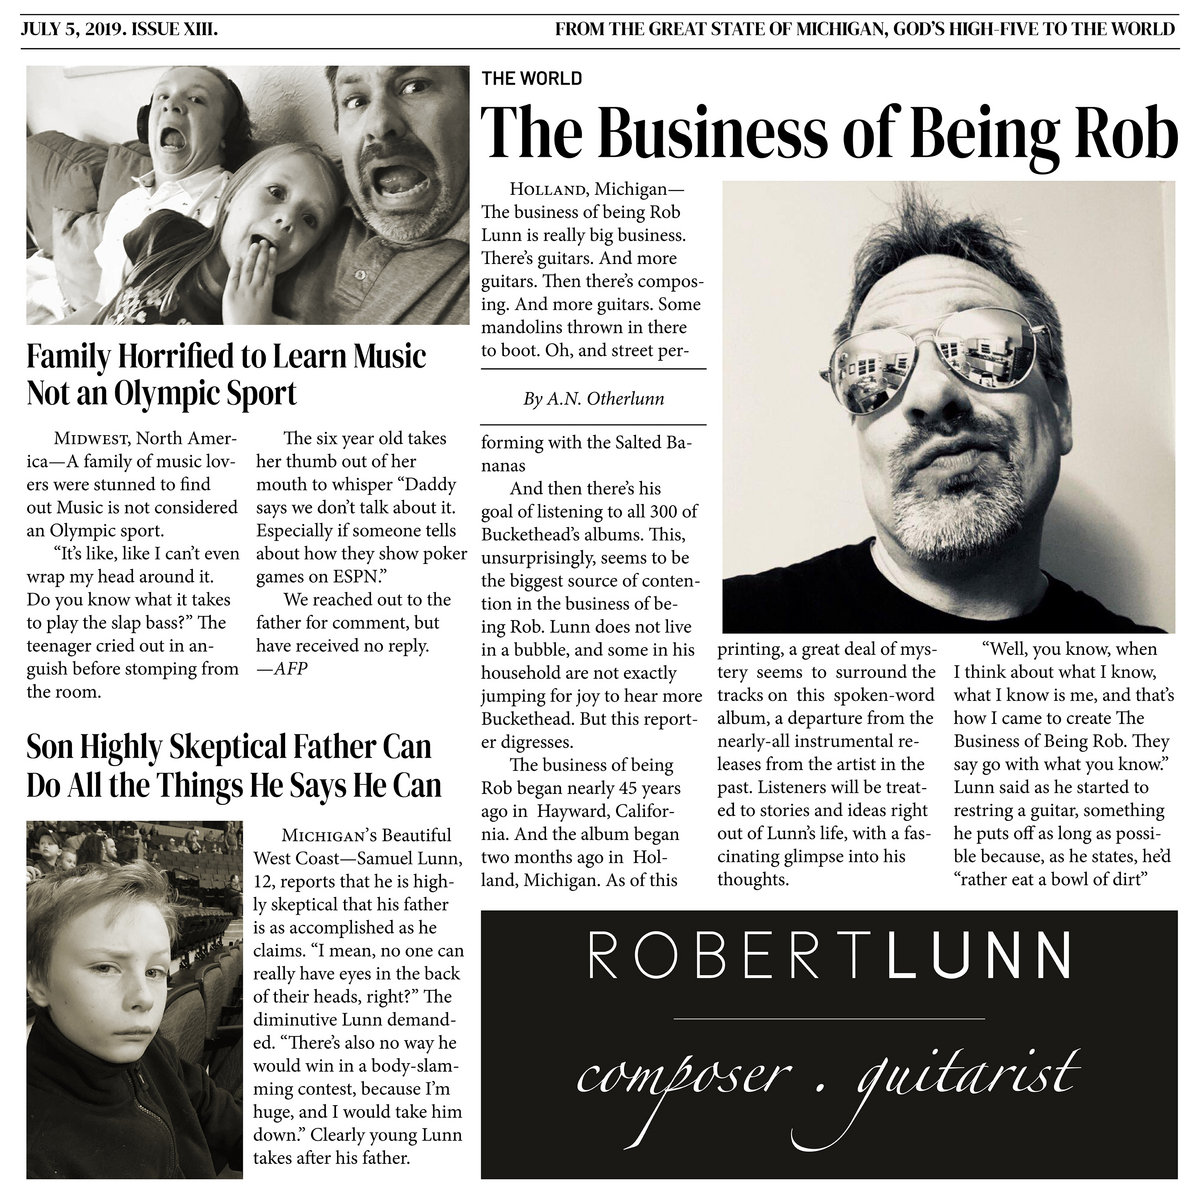 The Business of Being Rob | Robert Lunn Composer